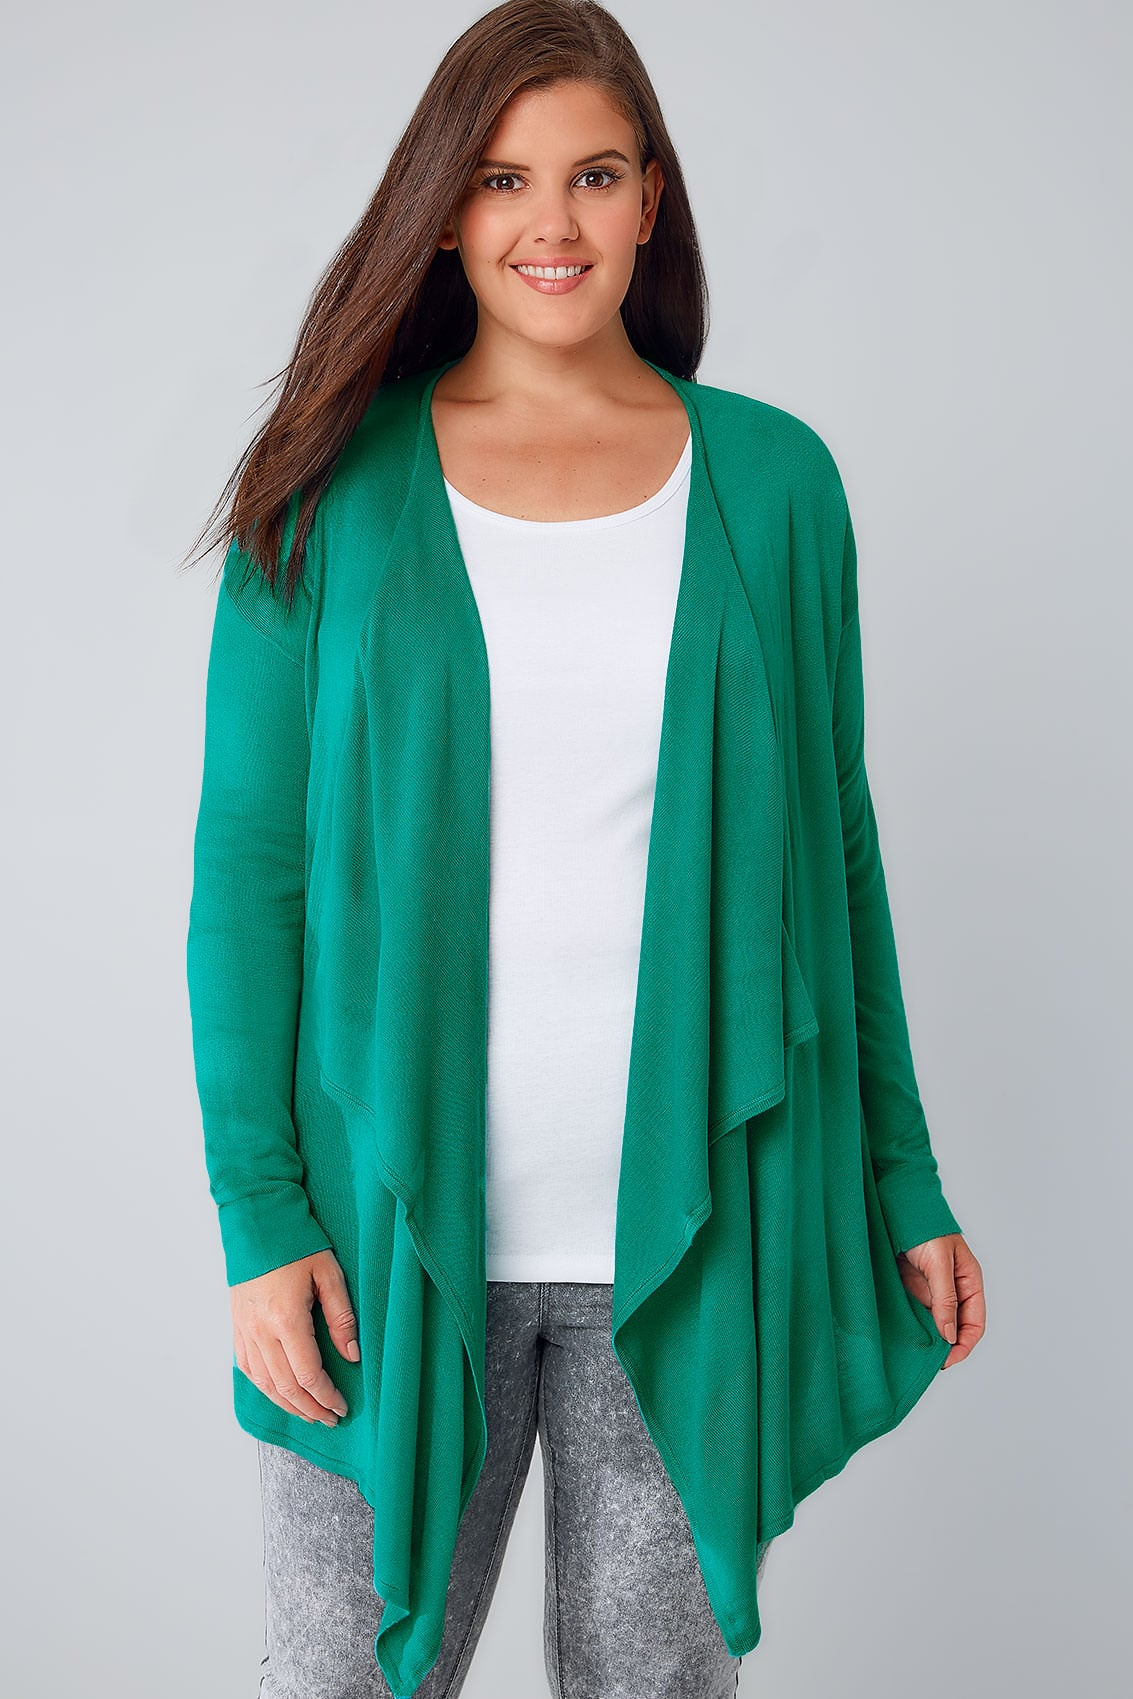 Jade Green Fine Knit Waterfall Cardigan, Plus size 16 to 36